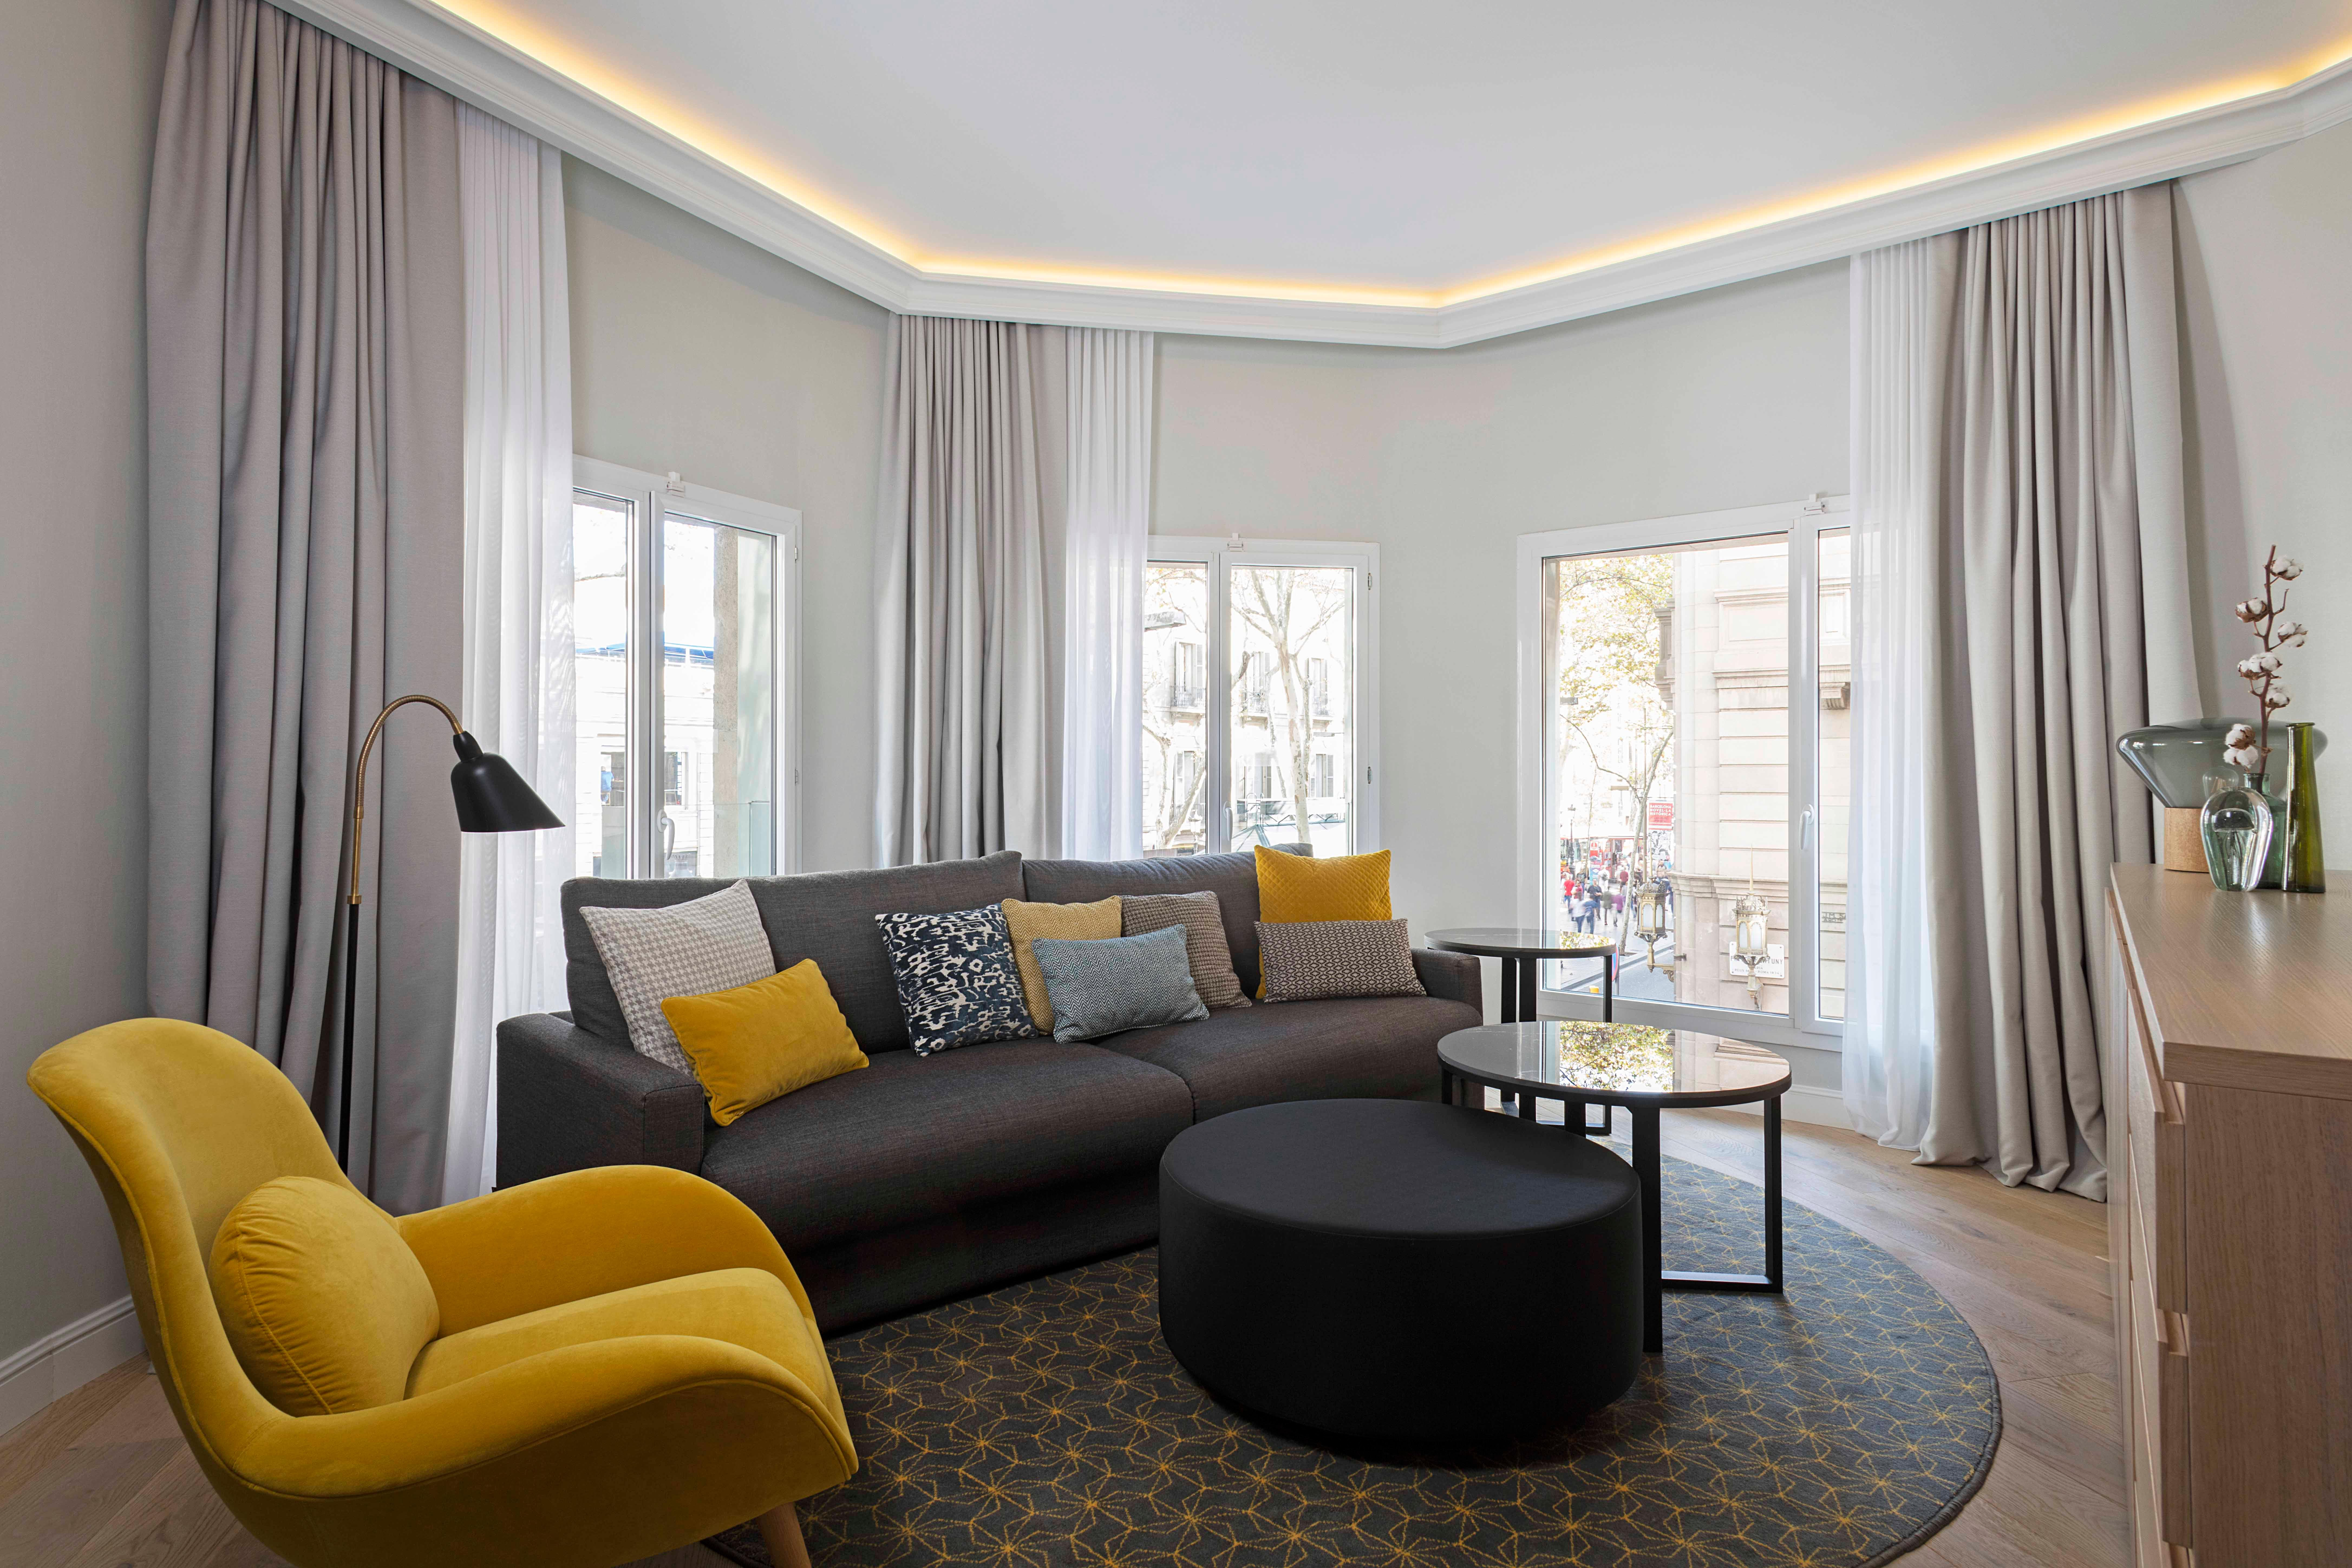 Corner Suite-Plug into the energy of Barcelona's most iconic boulevard. The Corner Suite overlooks the Ramblas, bringing its brio into a generous, sophisticated space inspired by Mid-Century Modernism.